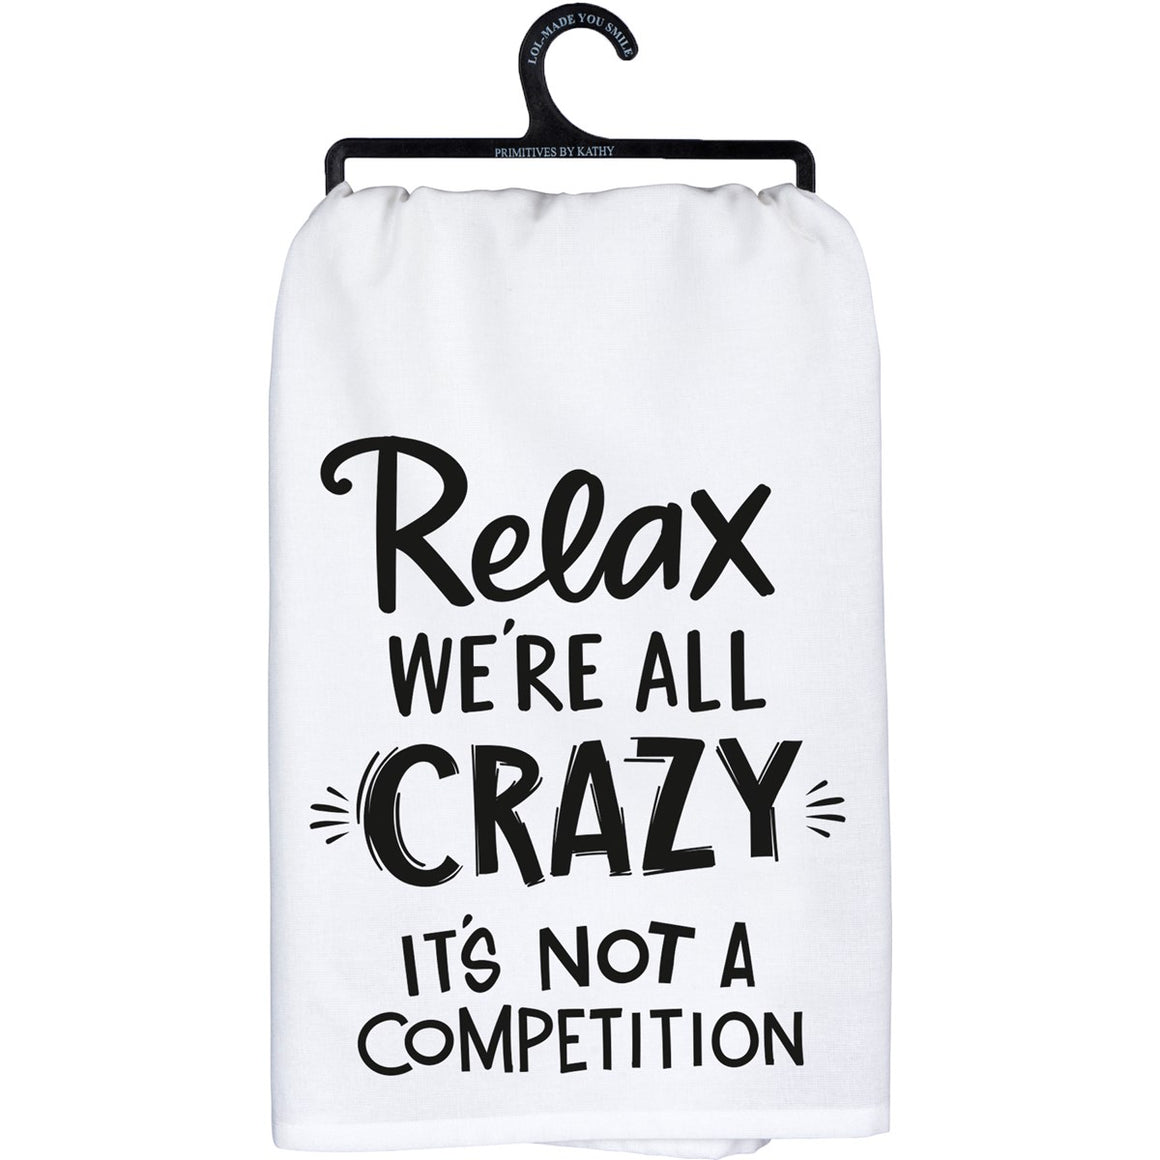 Relax It's Not A Competition - Dish Towel